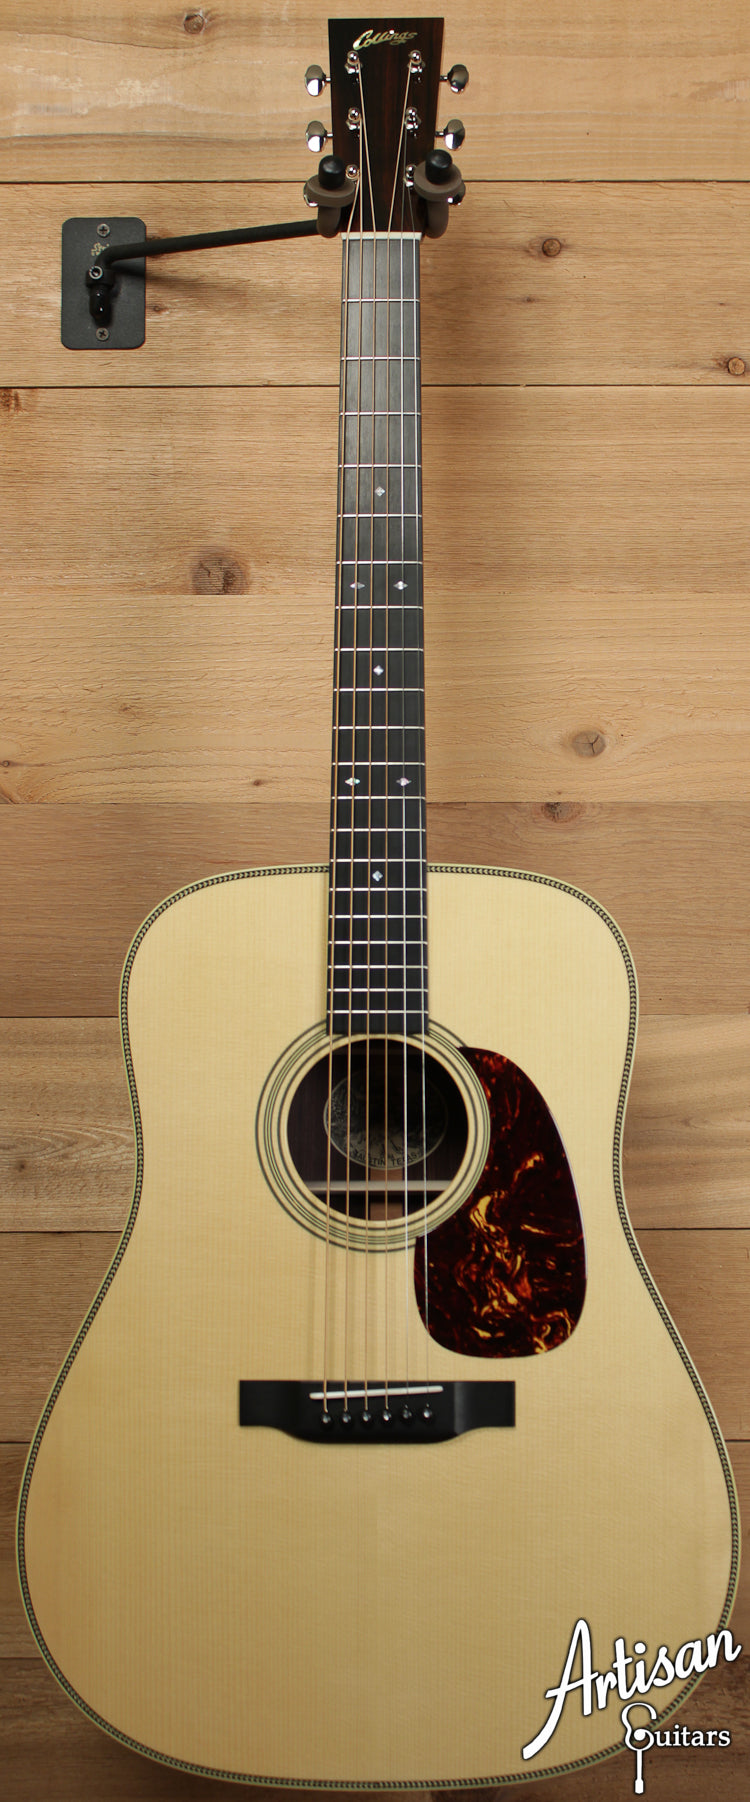 Collings D2HA Varnish Custom Adirondack Spruce and Indian Rosewood No Tongue Brace and Adirondack Bracing ID-6509